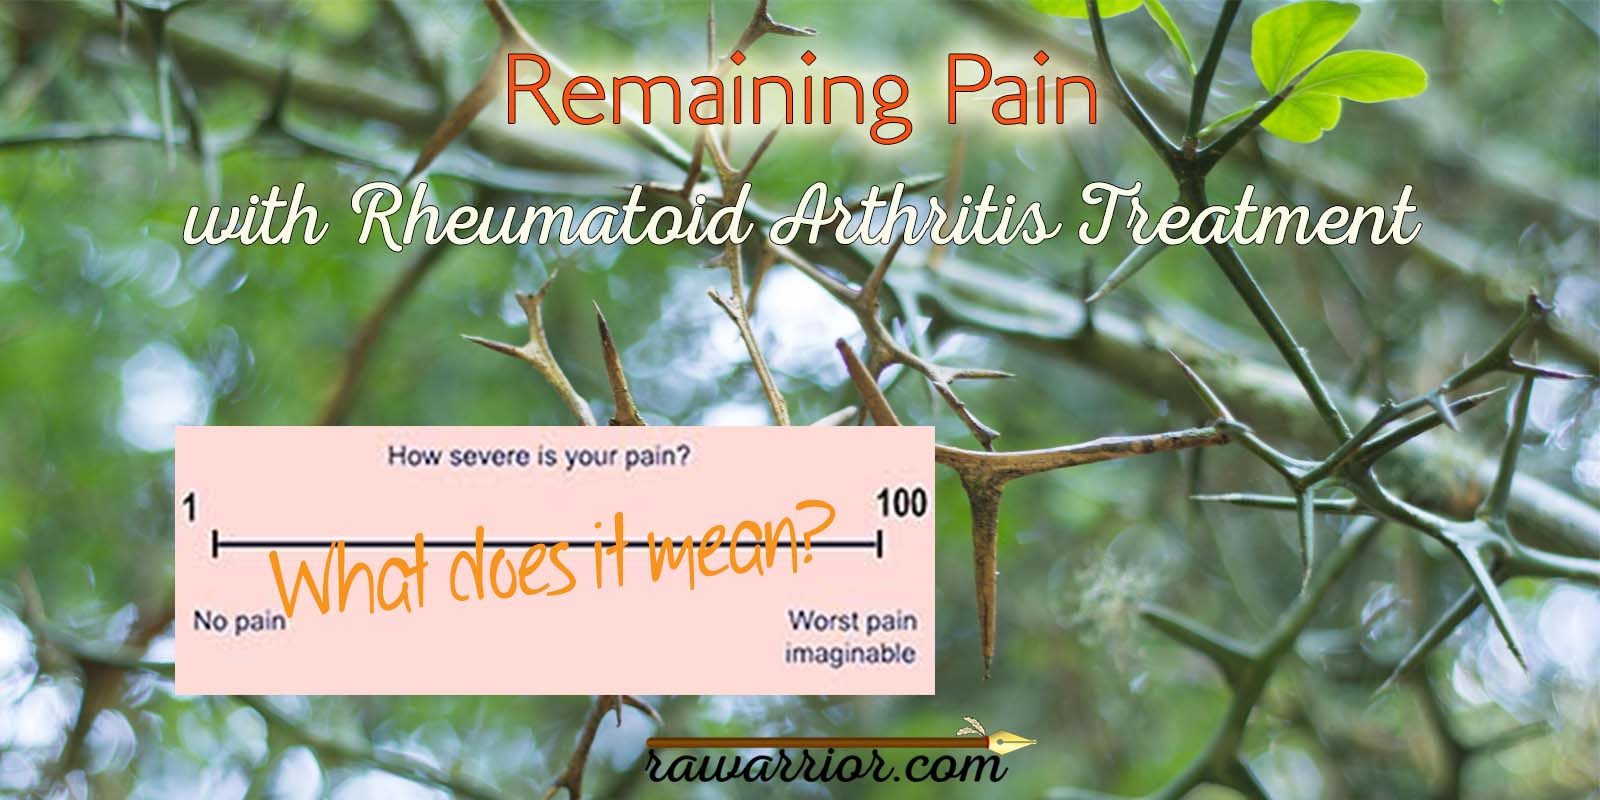 Remaining Pain with Rheumatoid Arthritis Treatment